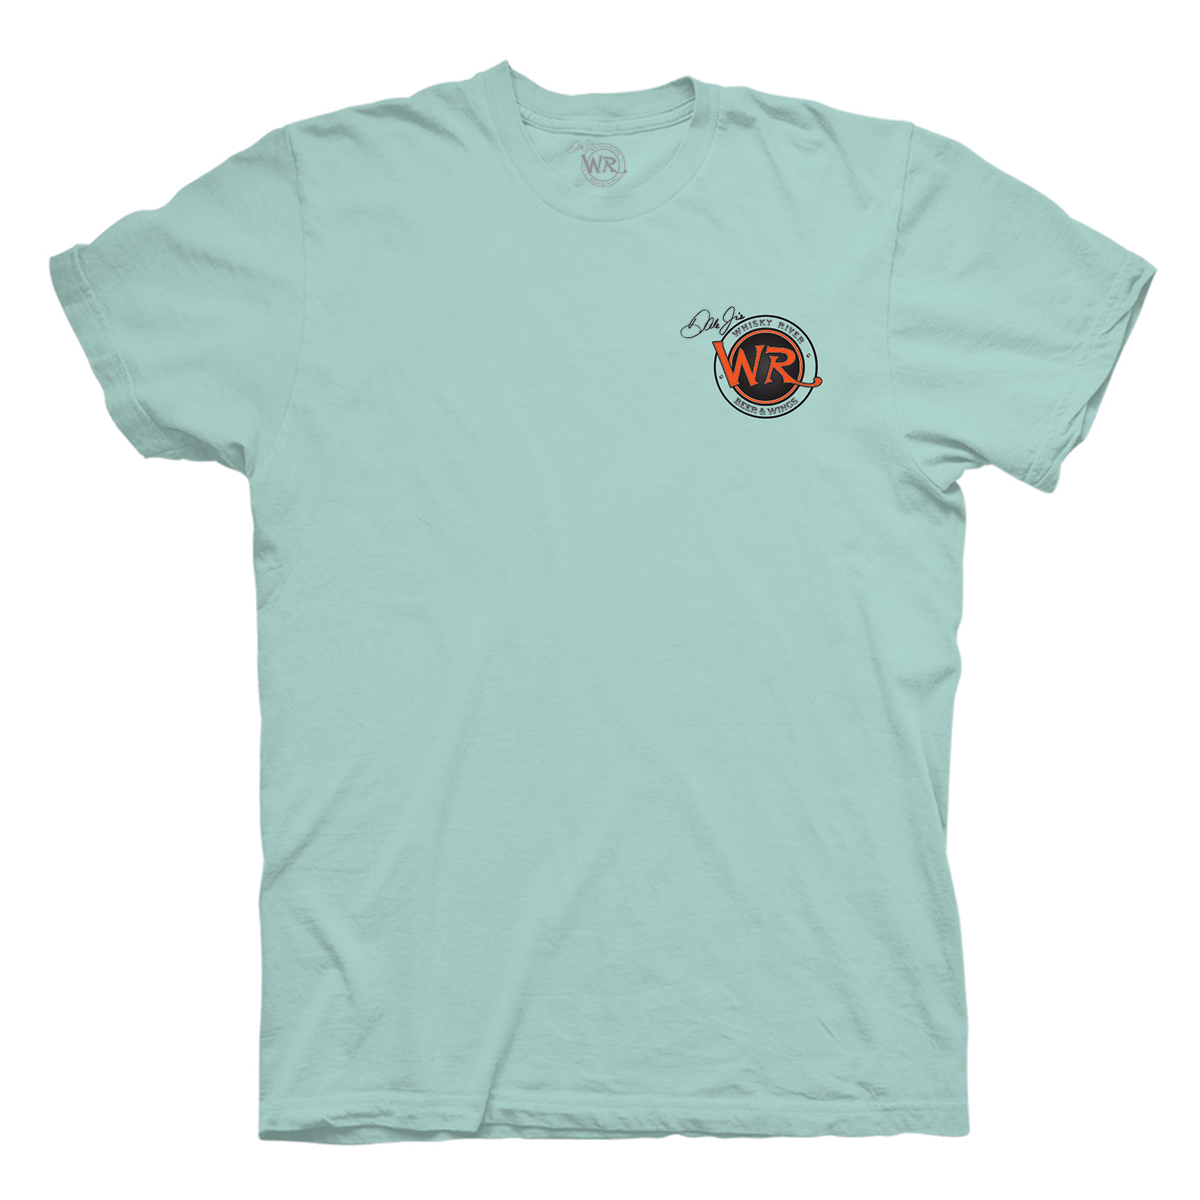 Whisky River North Myrtle Beach - Blue Southern Blend T-shirt